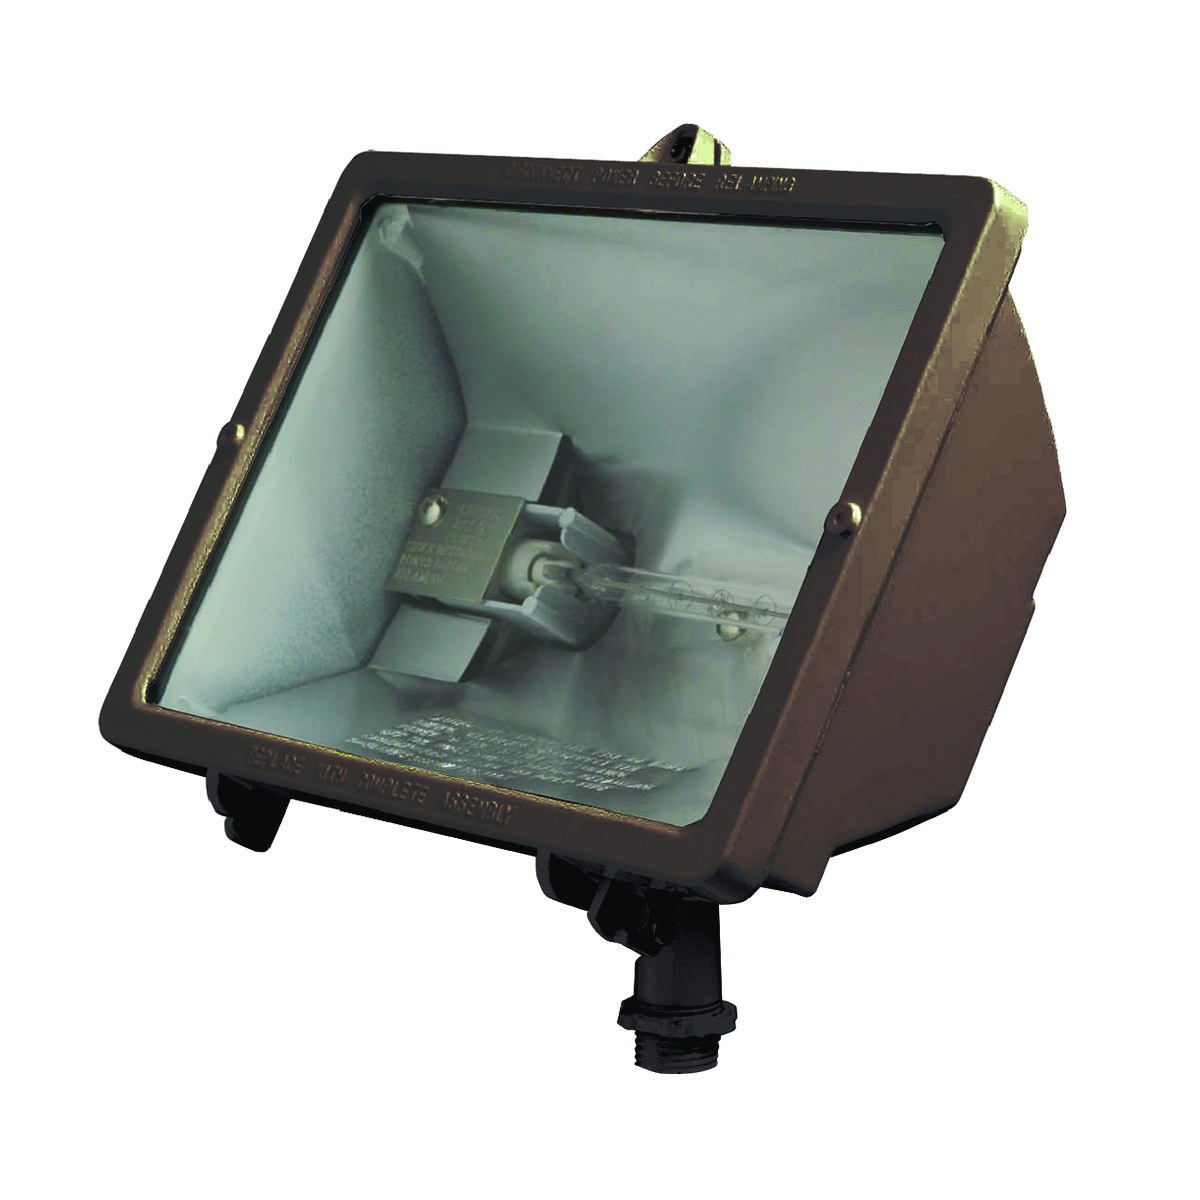 Hubbell Inc Q 500 B Flood Light Halogen Watt 120 Volt Bronze Summit Electric Supply Whole Electrical Supplies And Tools Distributor